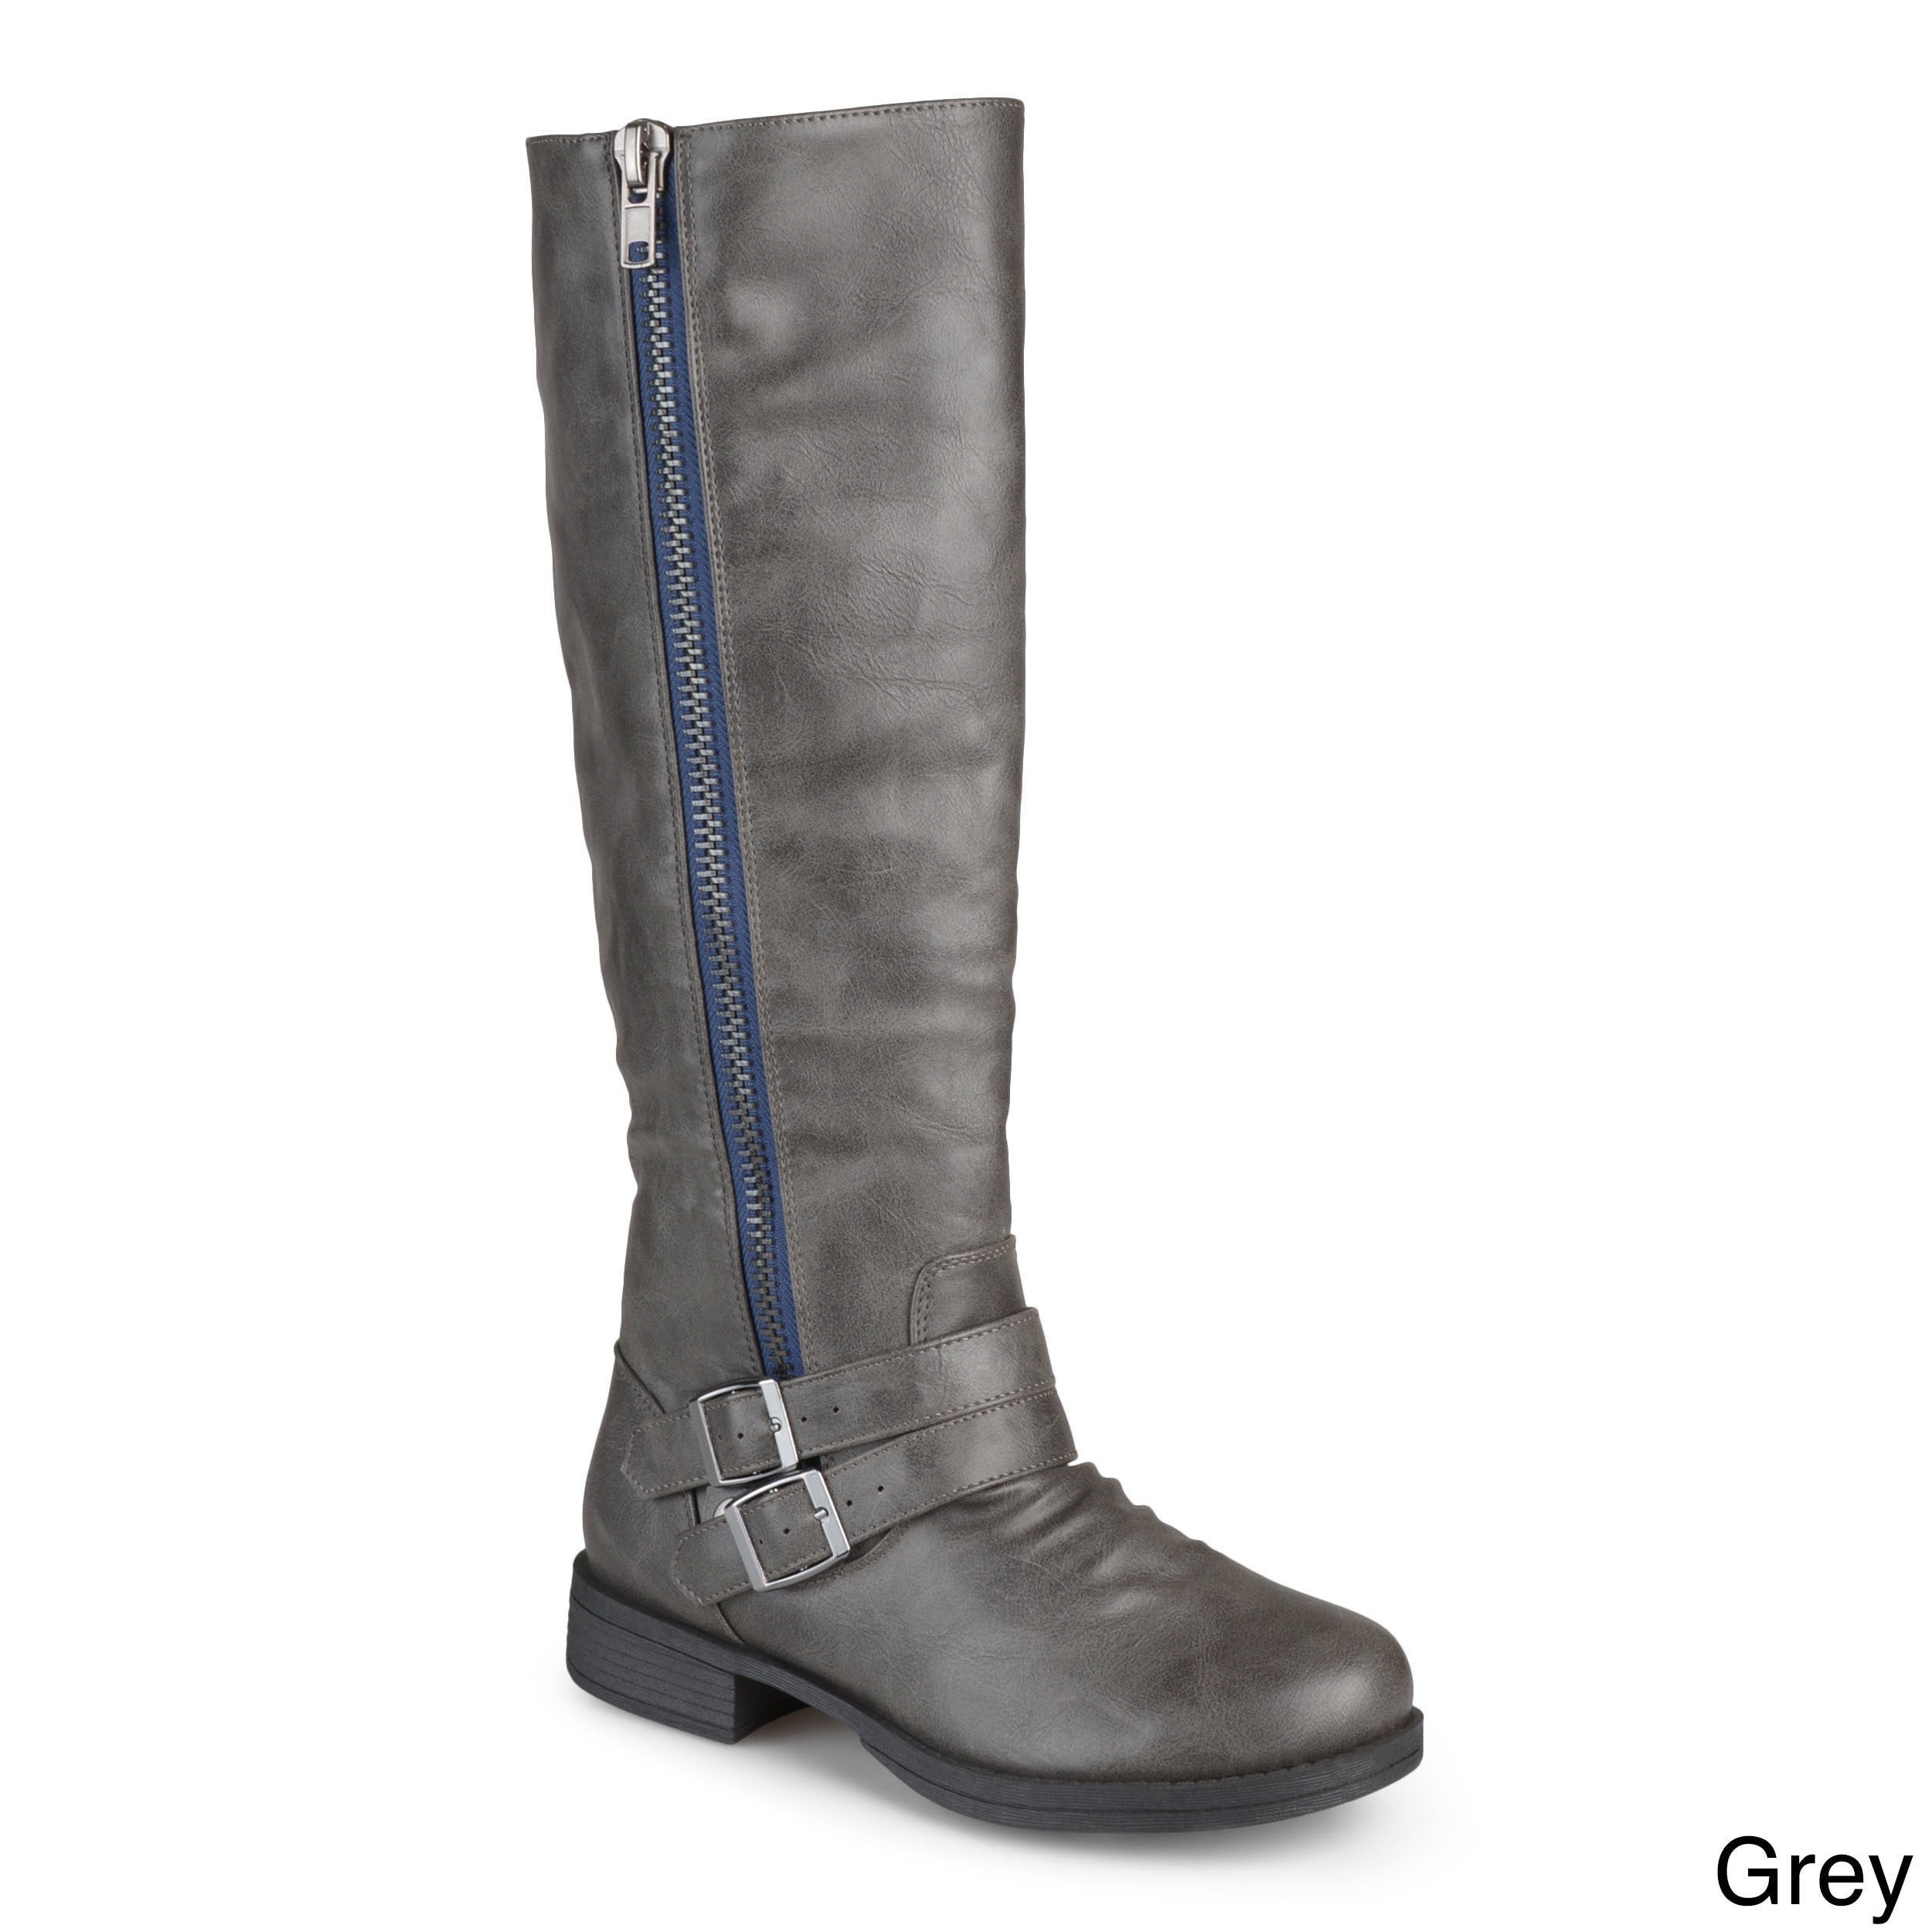 8d4ab6e05ced Shop Journee Collection Women s  Lady  Regular and Wide-calf Riding Boot -  Free Shipping Today - Overstock - 8342882